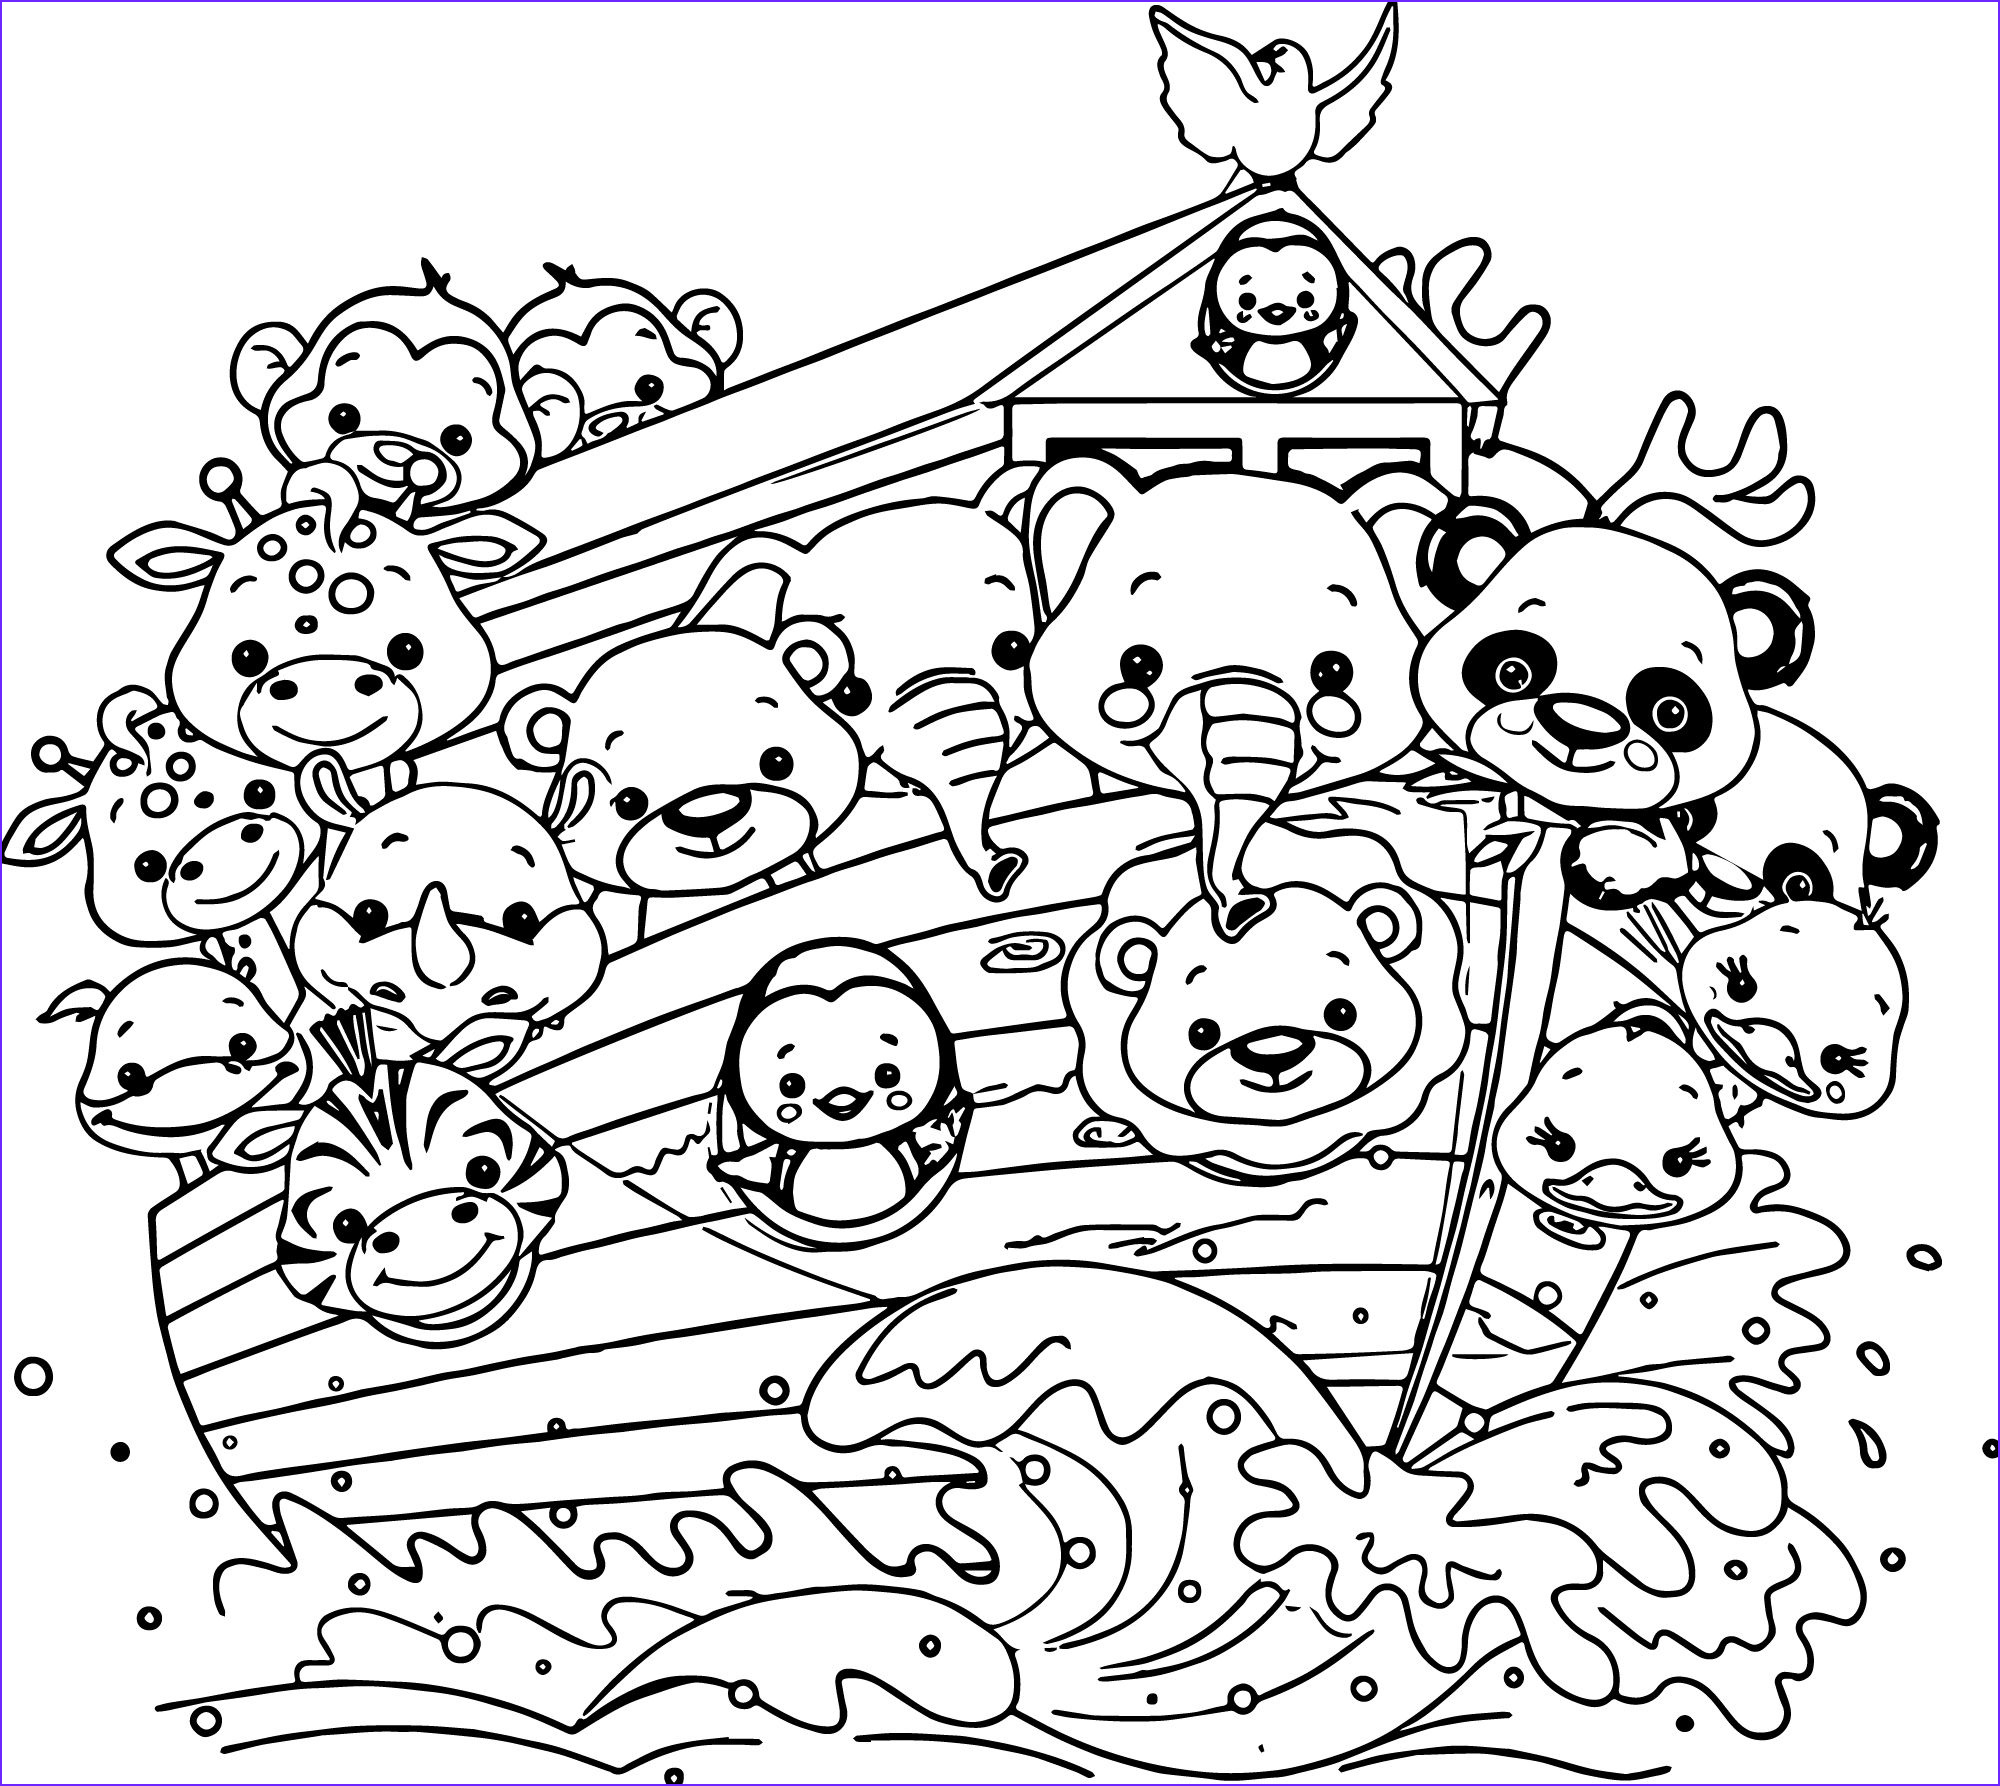 Free Printable Noah's Ark Coloring Page Cool Images Noah S Ark Cartoon Coloring Pages Coloring